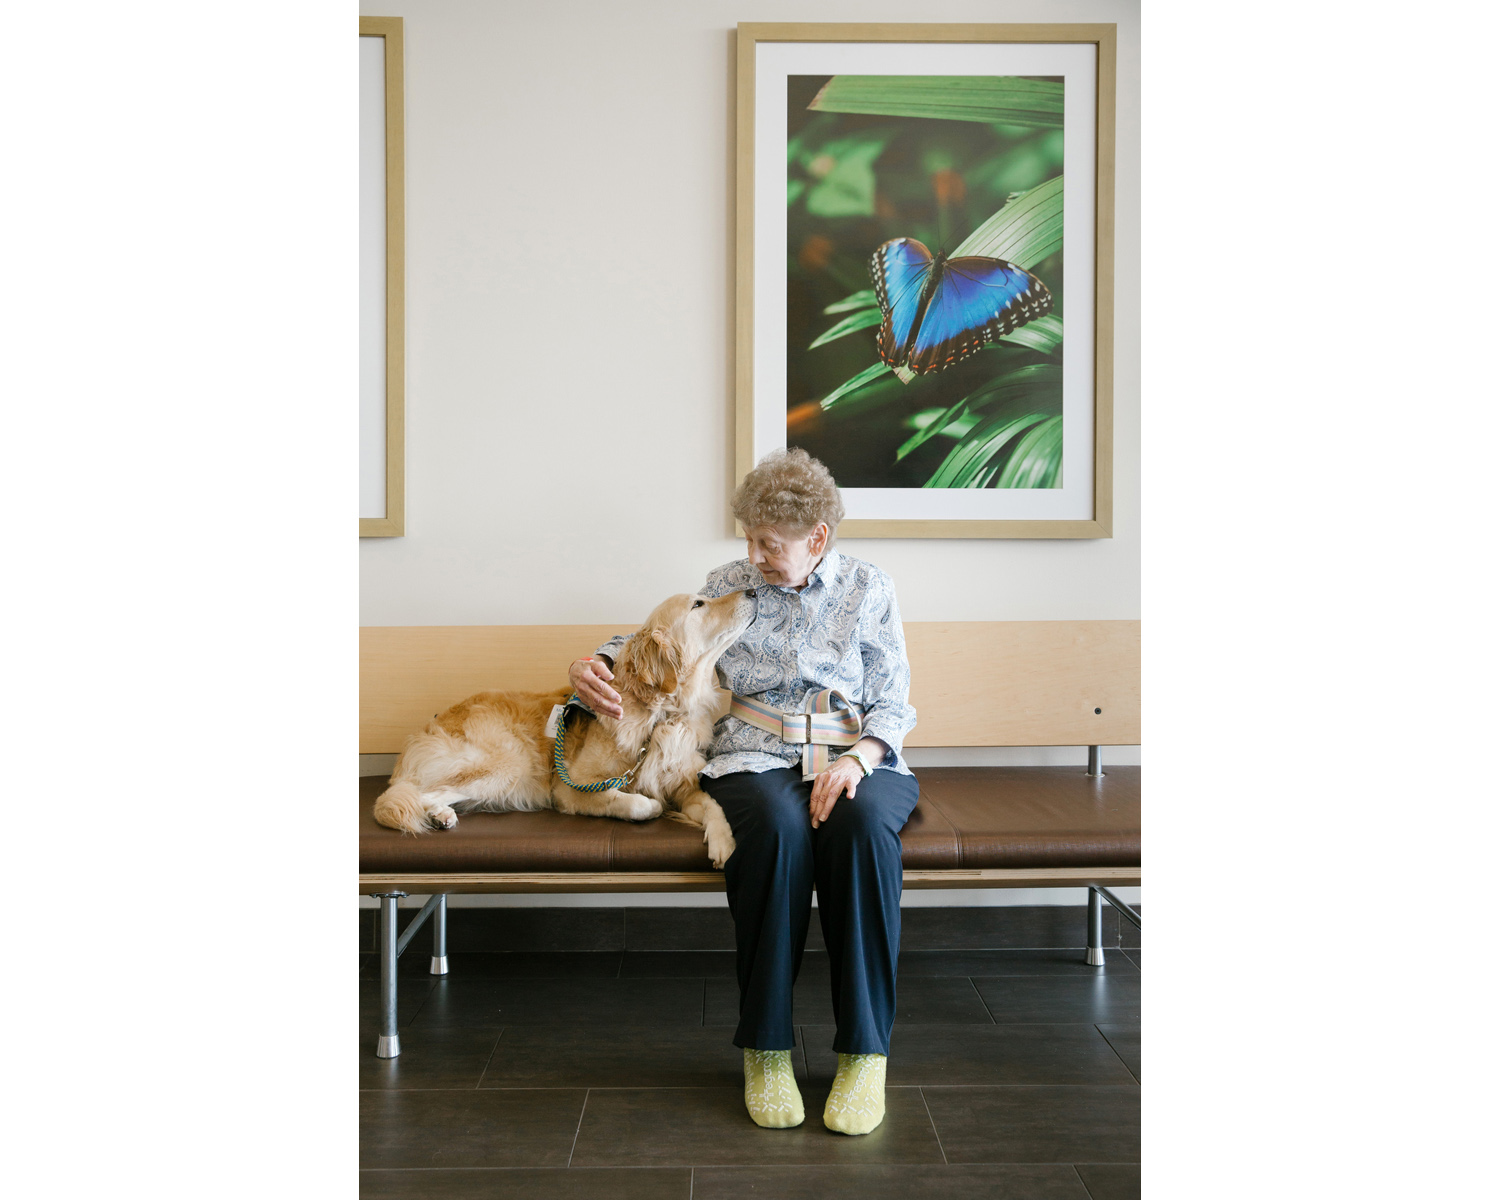 Jacqueline Ramage takes a break with Pria, a therapy dog, during a walk at the Mercy Rehabilitation Hospital in Springfield, Mo. on June 1, 2017. Photo by Brad Zweerink.